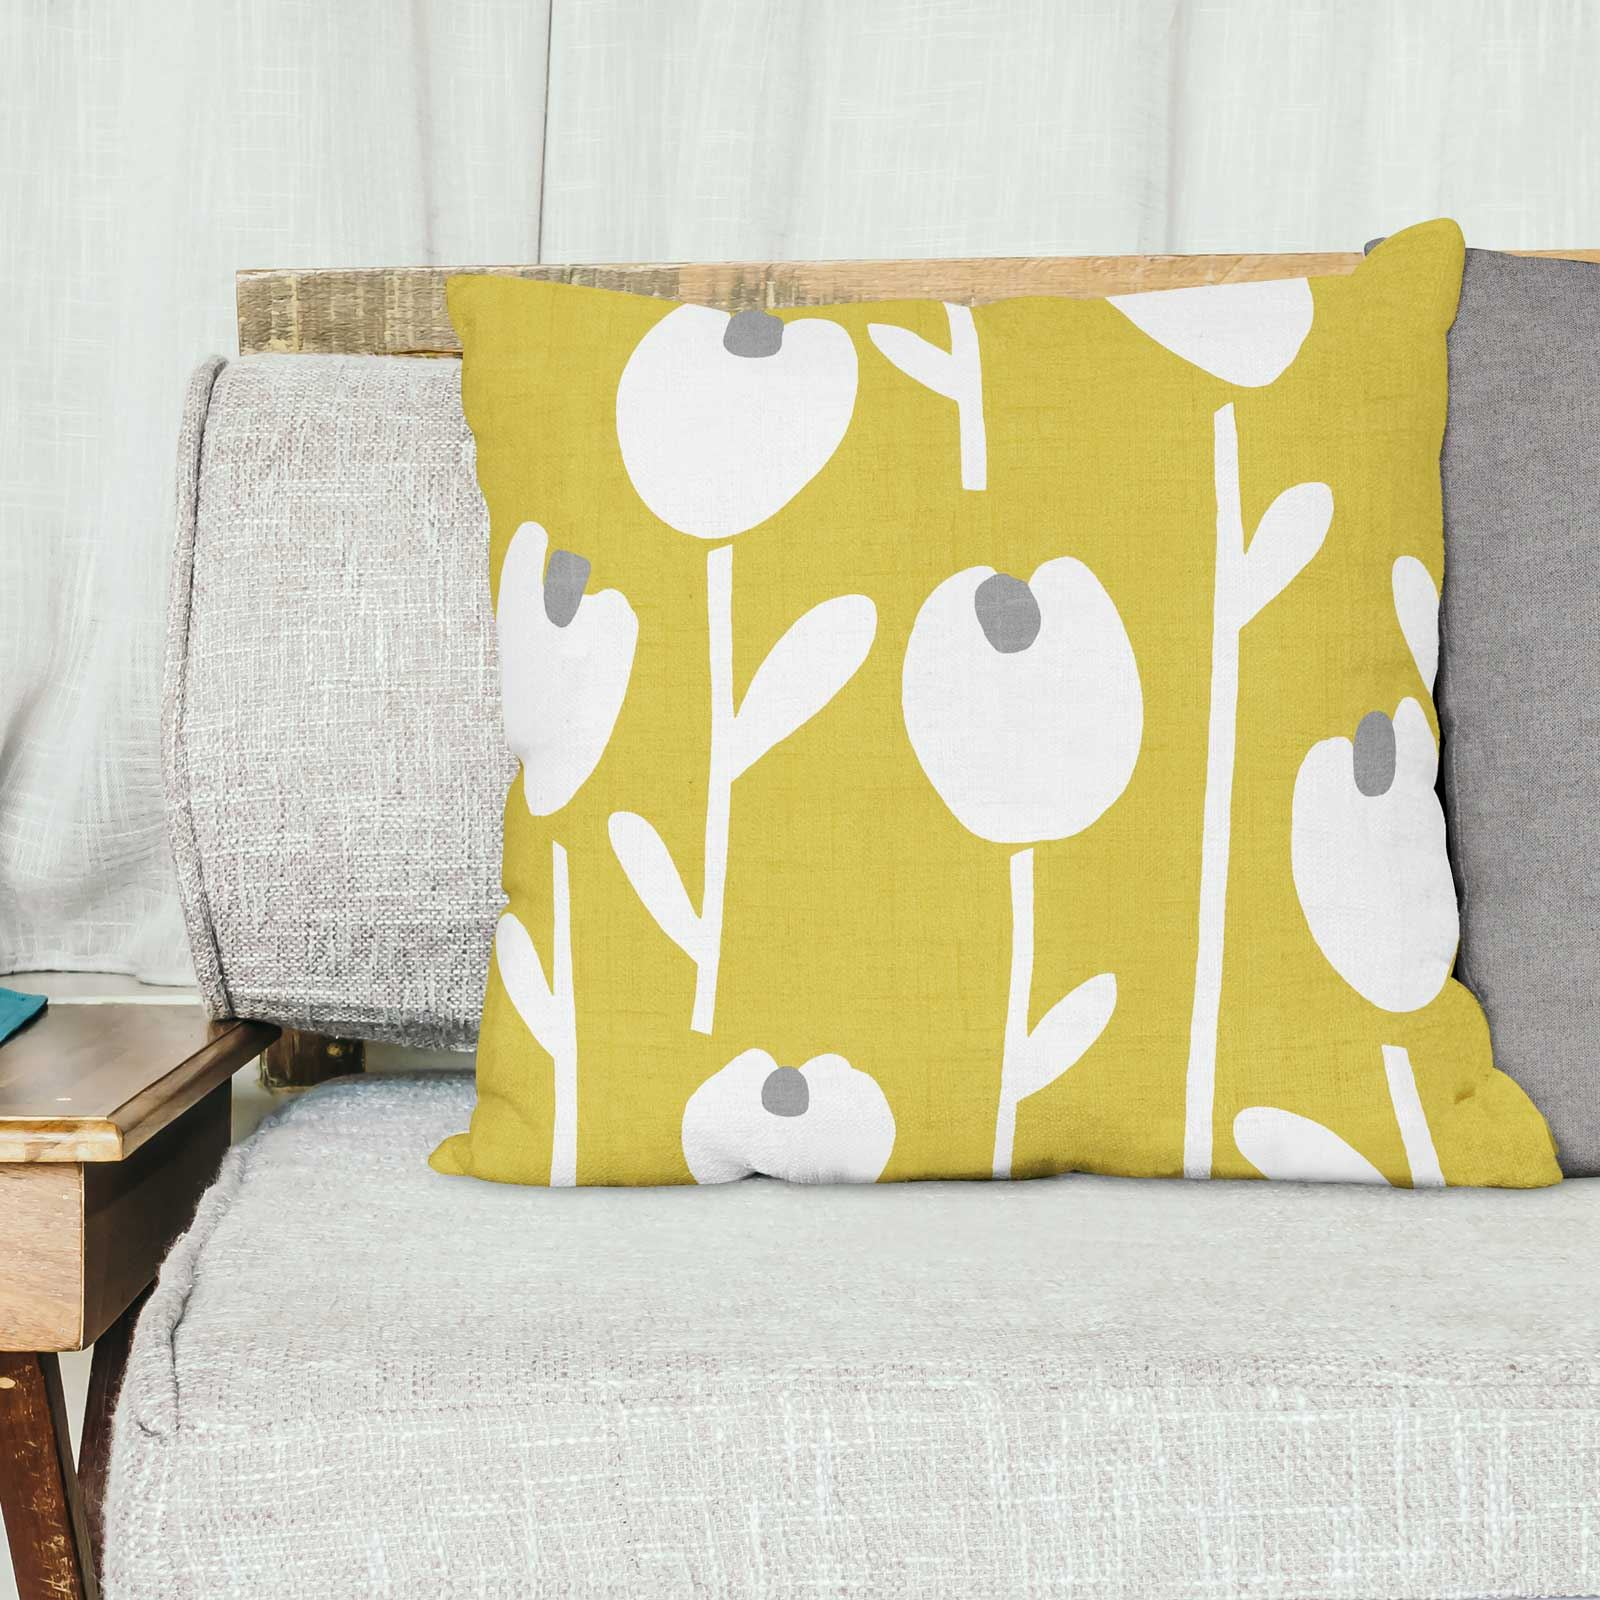 Grey-Ochre-Mustard-Cushion-Cover-Collection-17-034-18-034-Covers-Filled-Cushions thumbnail 13